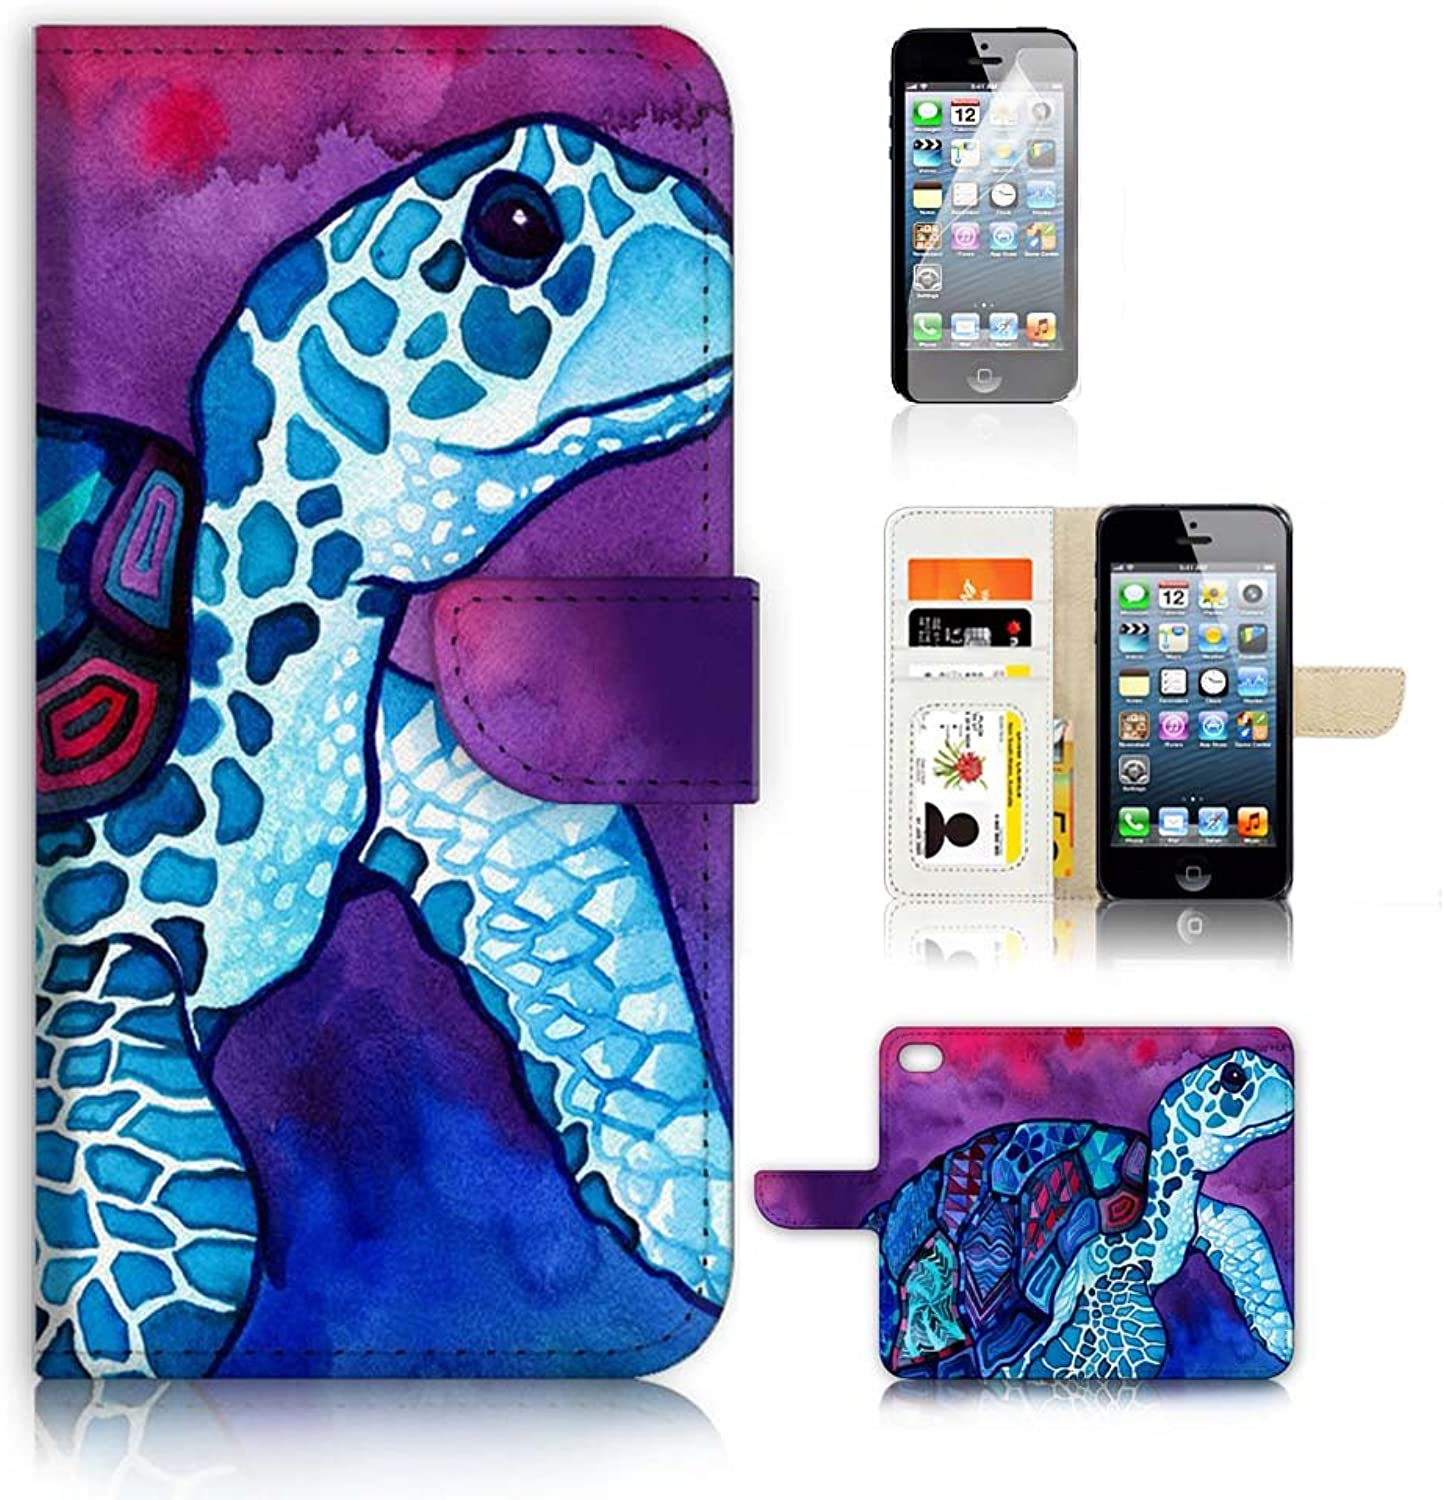 3767d6dc5d2 IPhone 5 5S iPhone SE Flip Wallet Case Cover & Predector Bundle A20298  Turtle Paint Screen nwimpp1723-Sporting goods